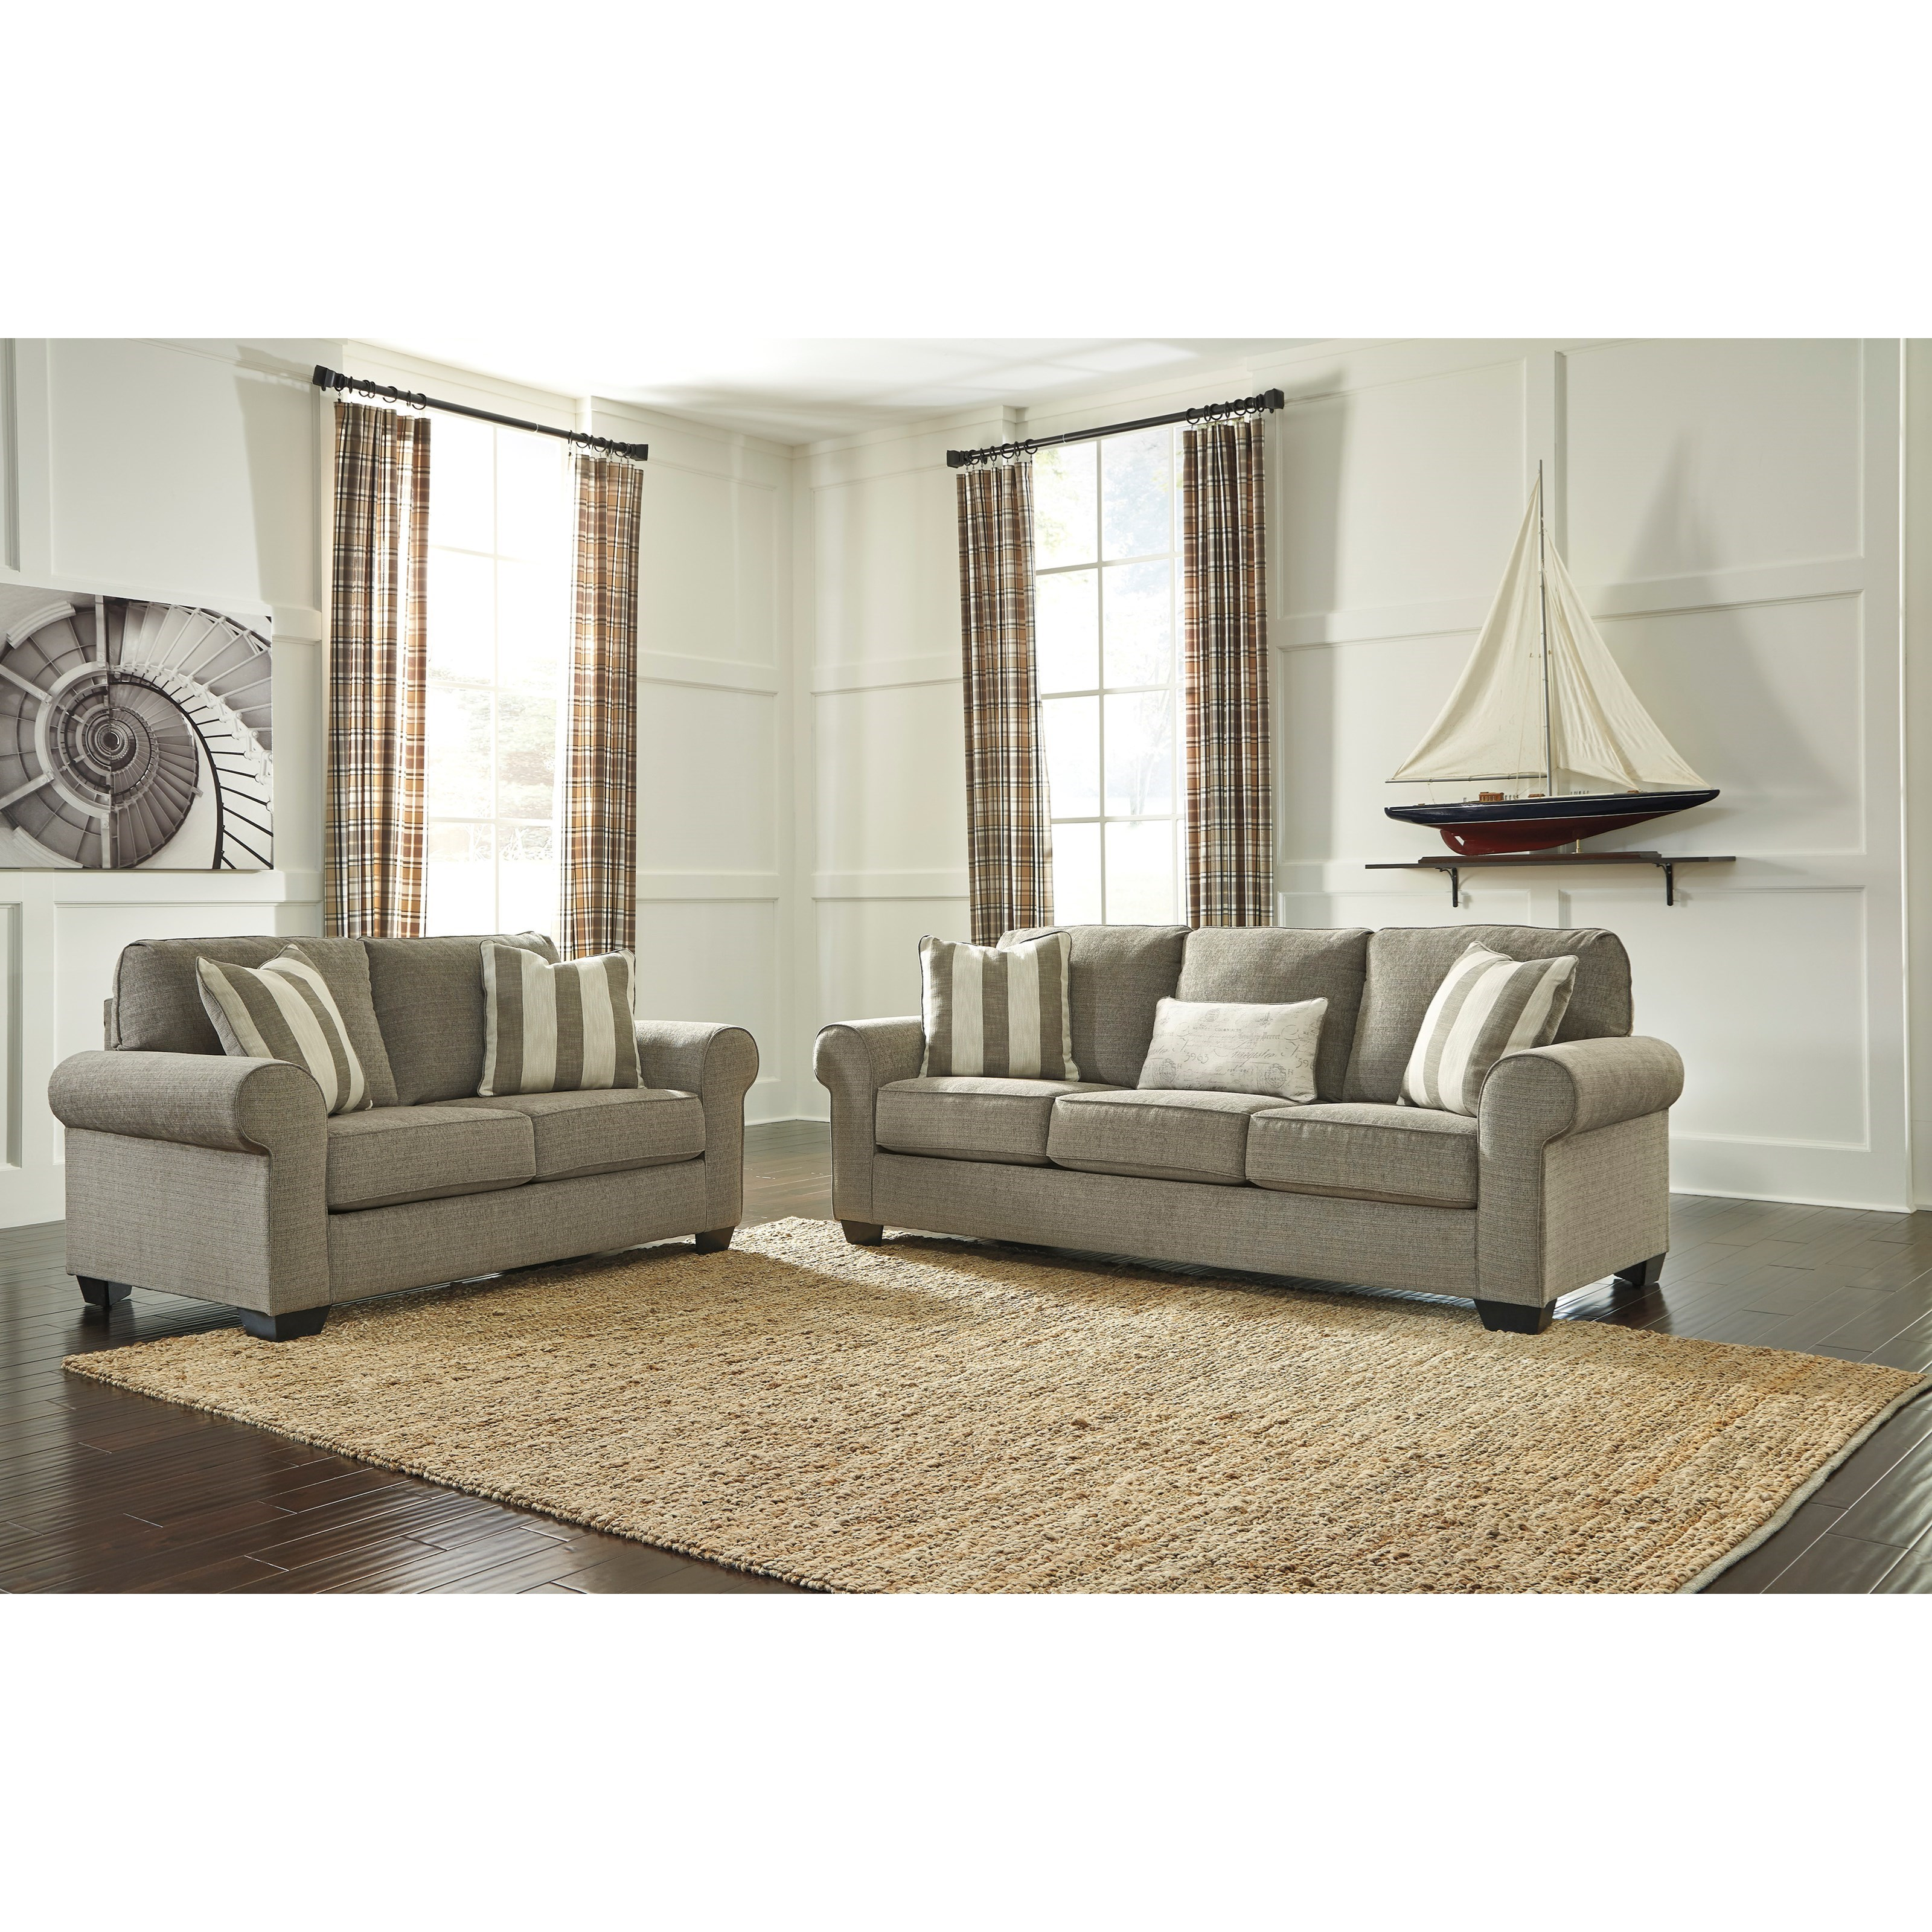 Signature Design by Ashley Baveria Stationary Living Room Group - Item Number: 47600 Living Room Group 1